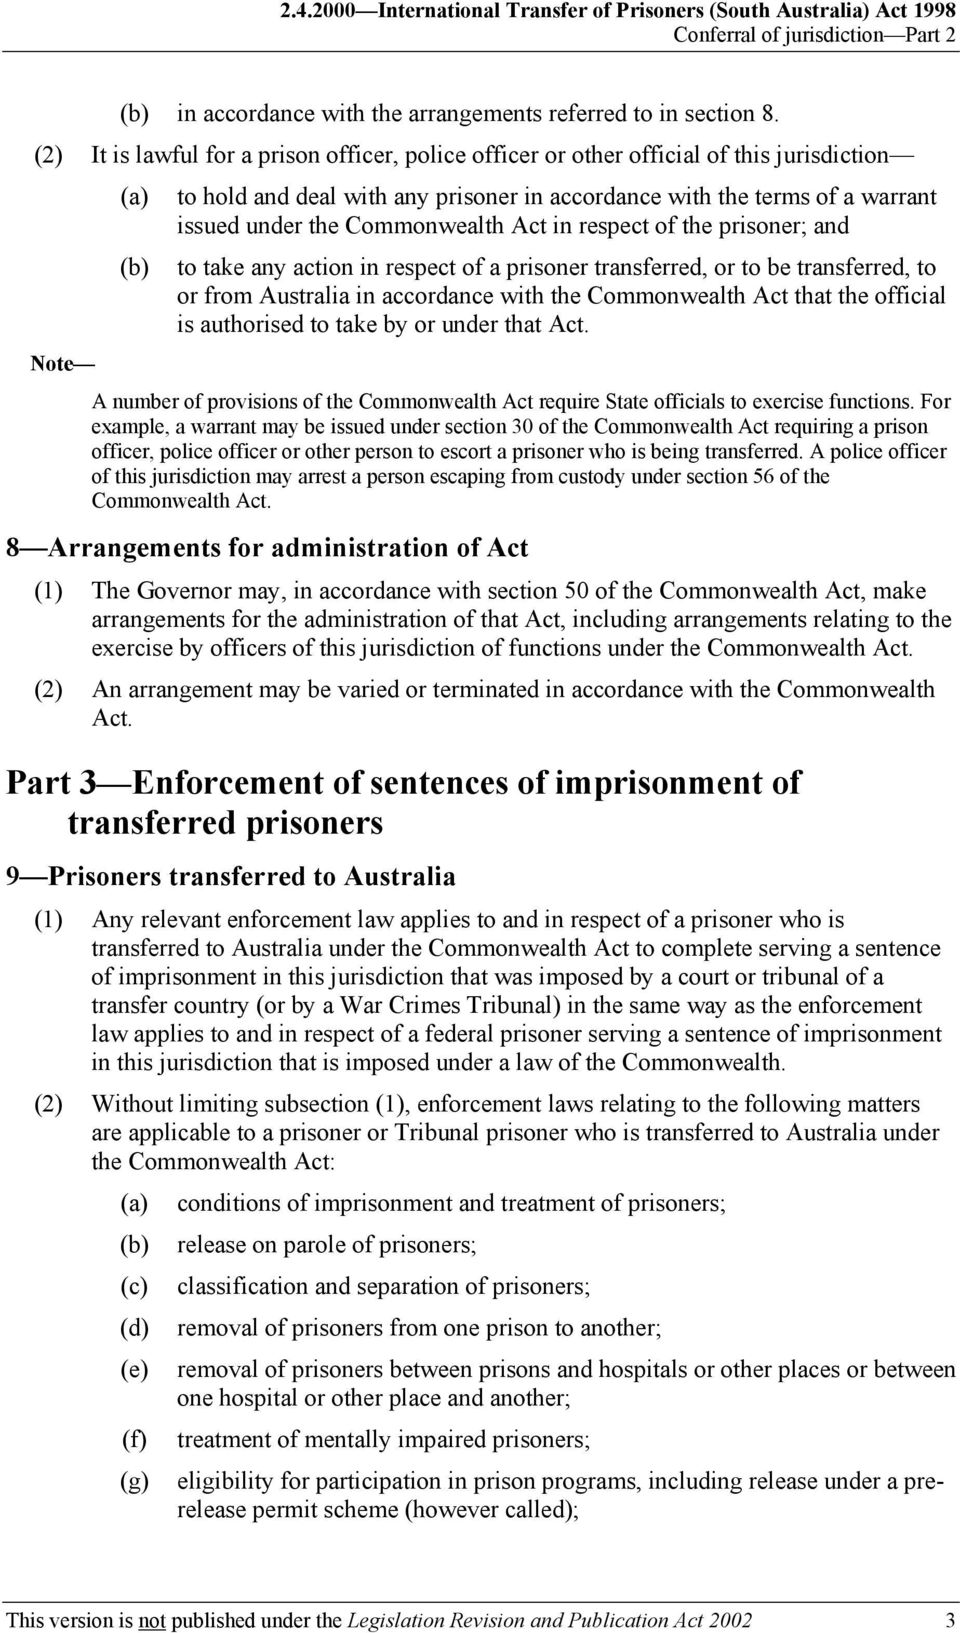 Commonwealth Act in respect of the prisoner; and (b) to take any action in respect of a prisoner transferred, or to be transferred, to or from Australia in accordance with the Commonwealth Act that